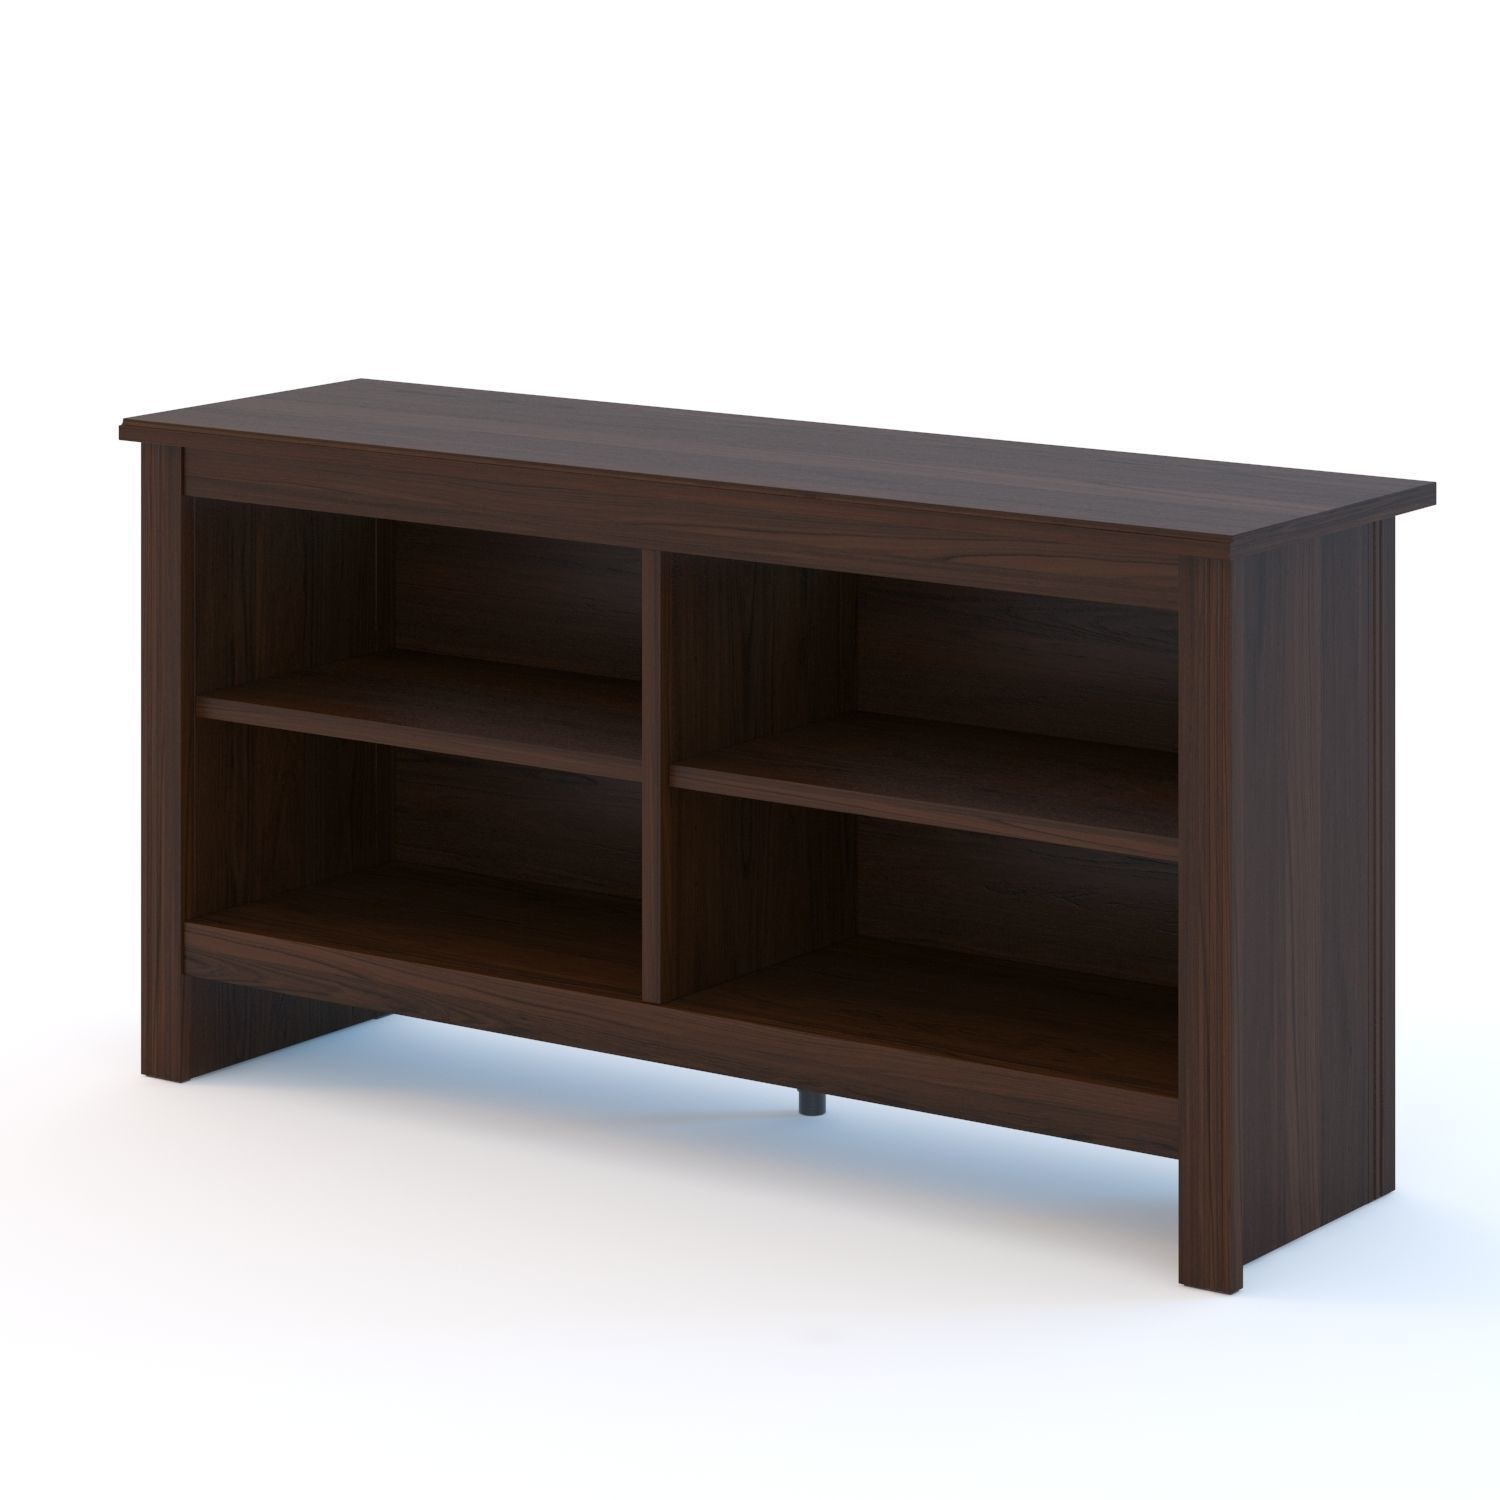 Ali Muebles Ikea Brusali Tv 3d Model